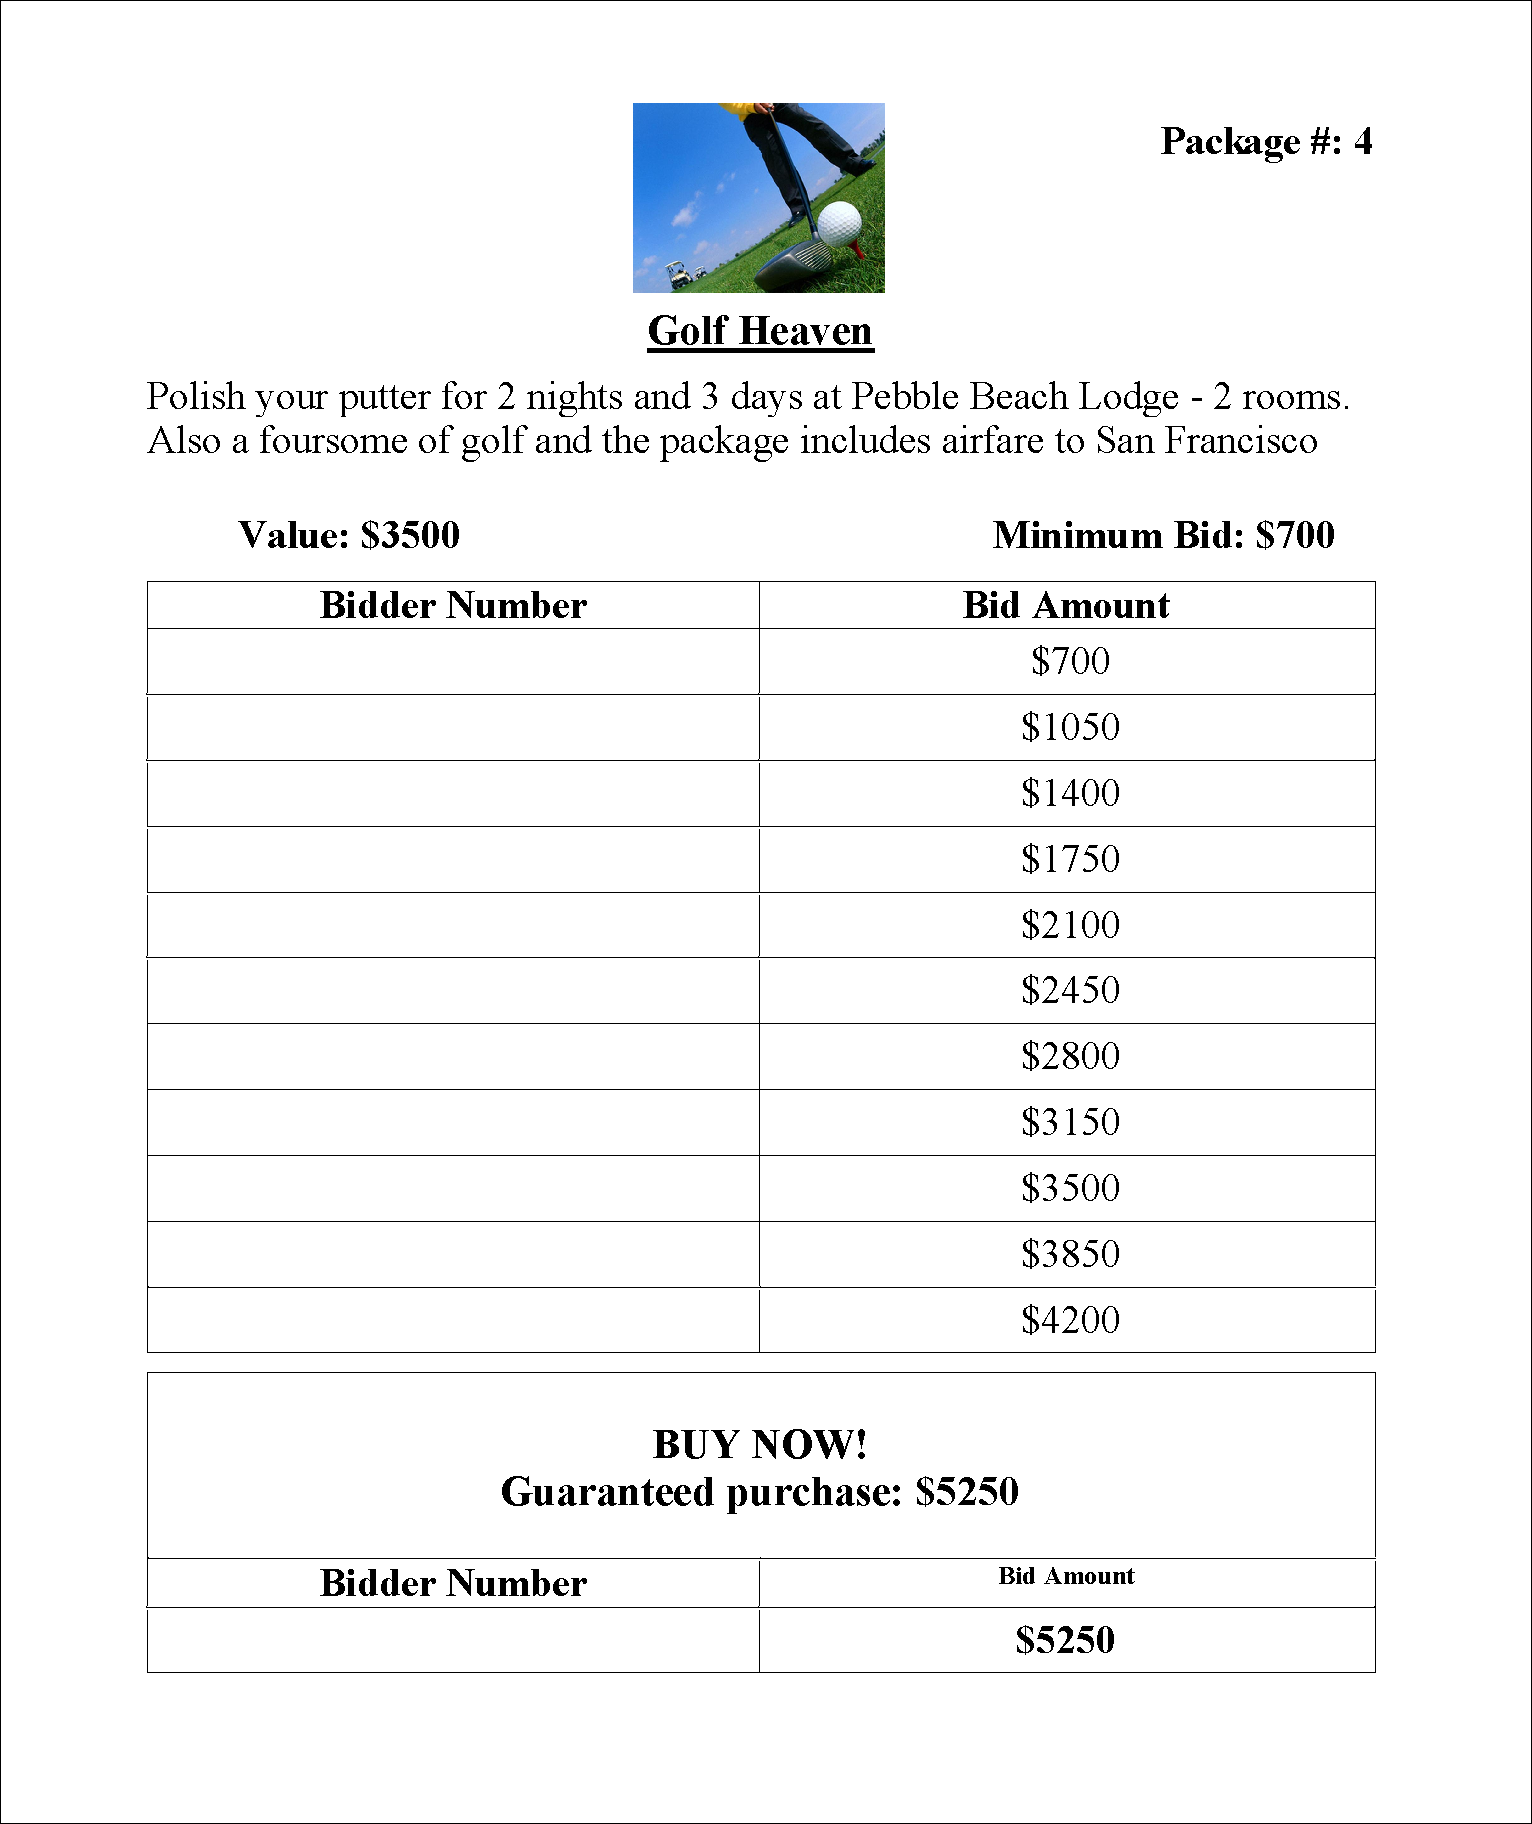 Bidsheet4 Out Of Greater Giving Software Just A Few Samples Of Bidsheet Templates